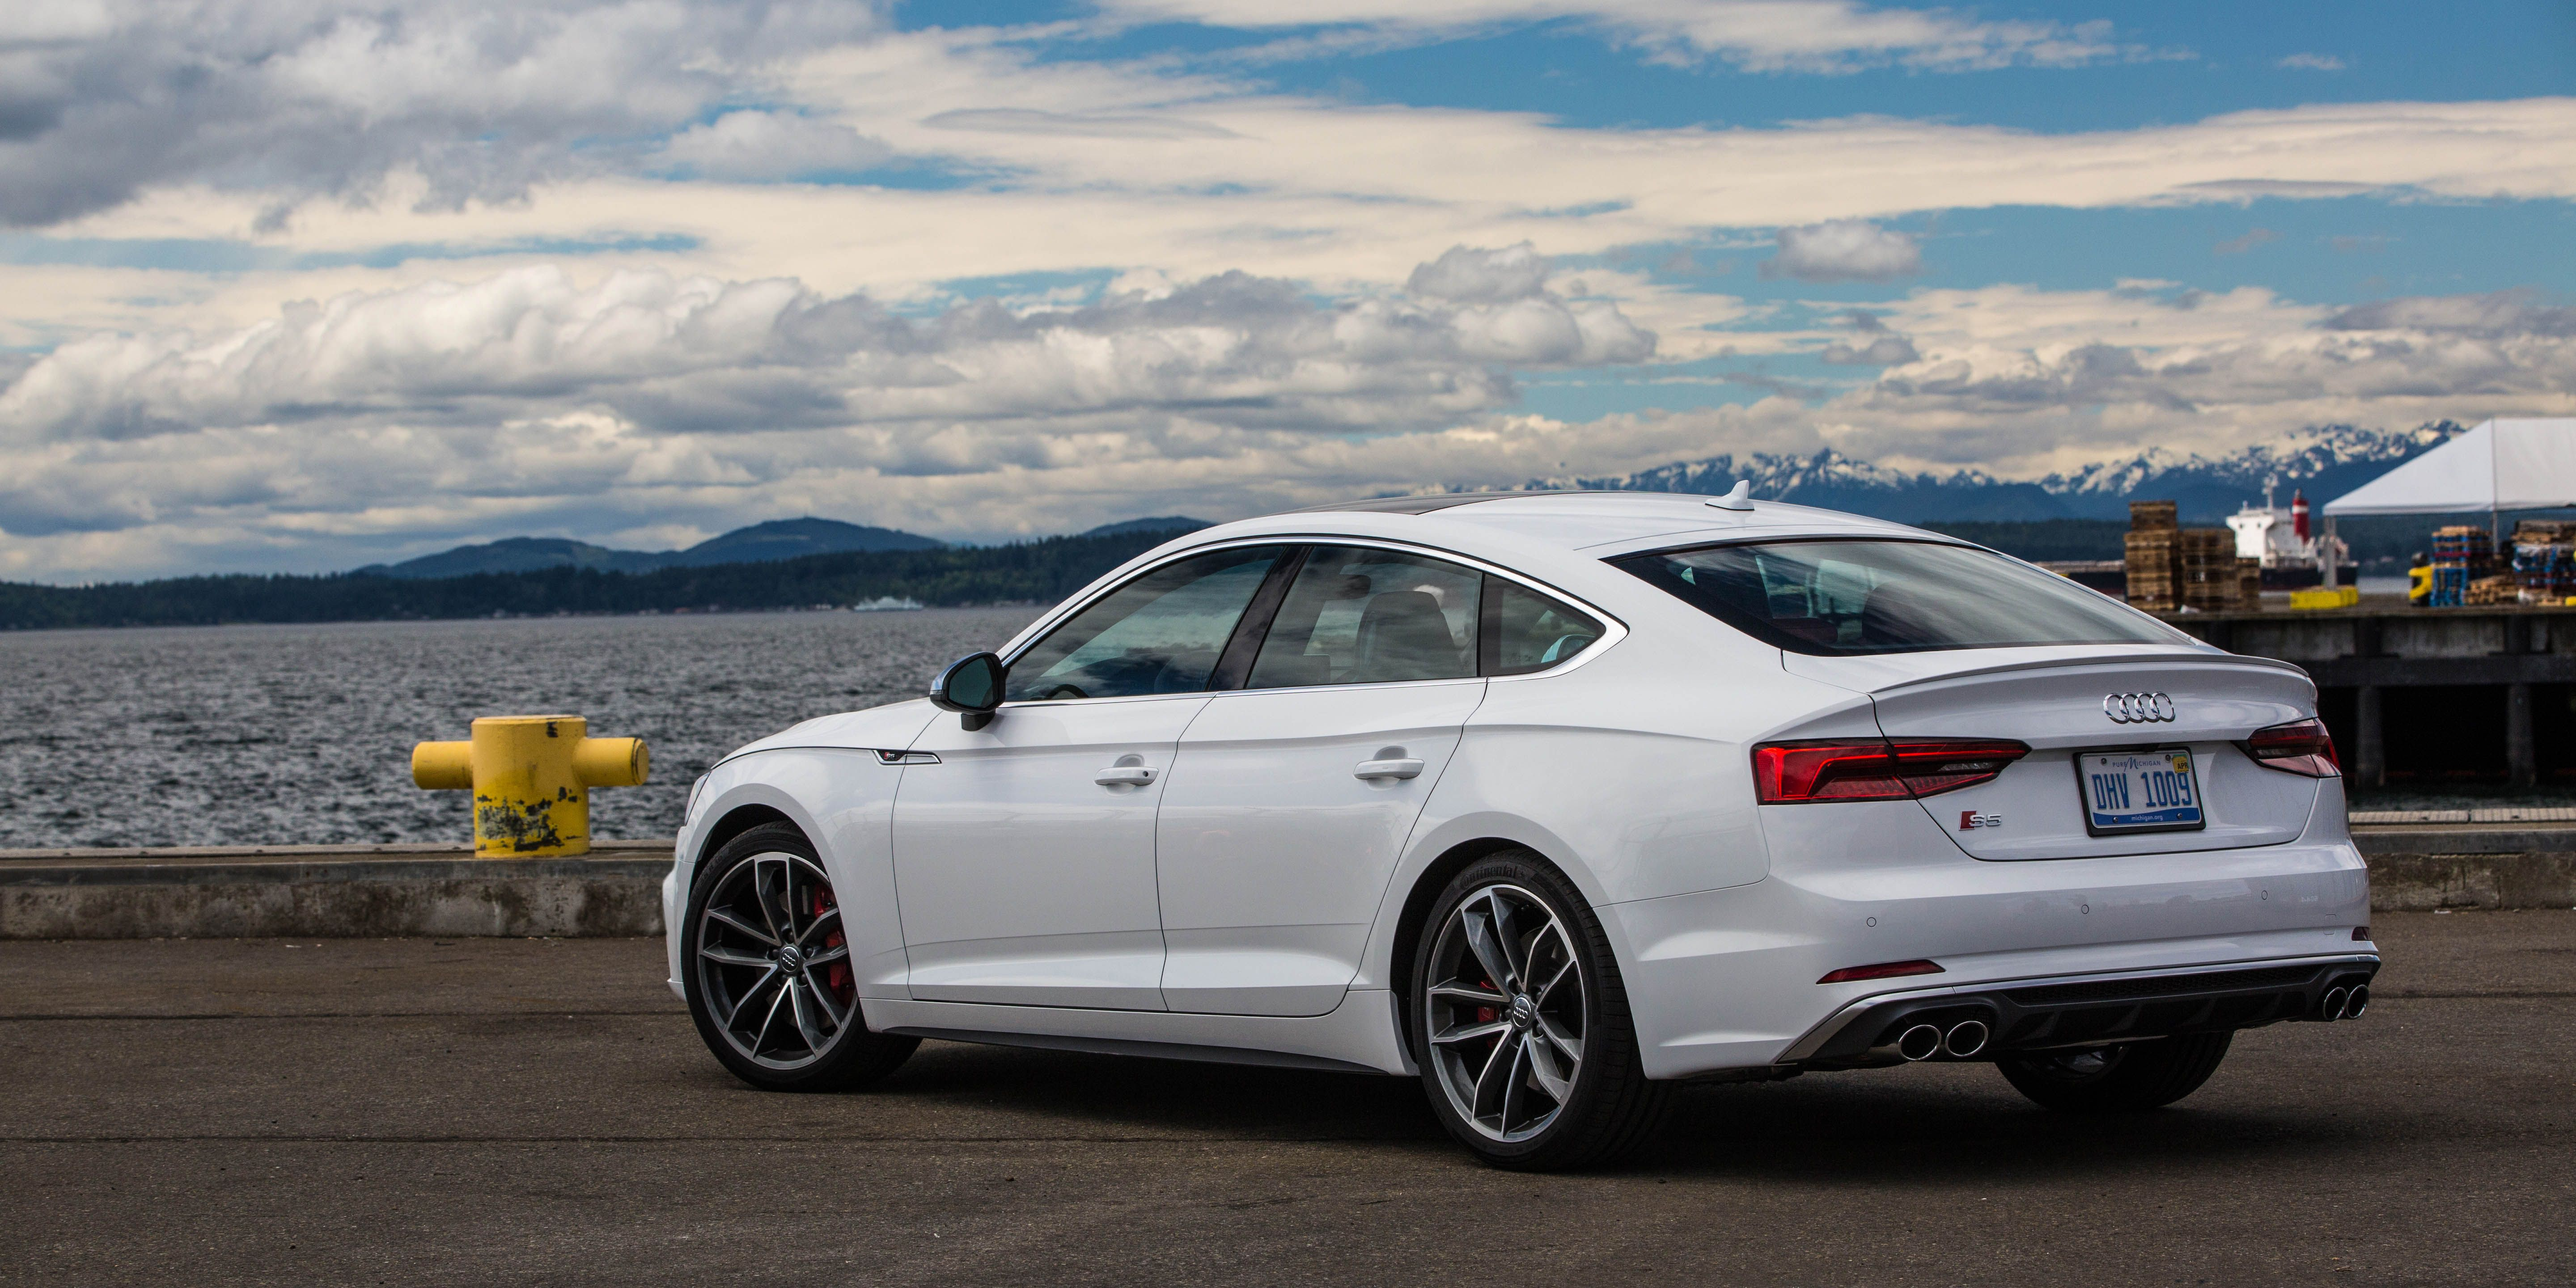 Audi s5 sportback 2017 review by car magazine - Audi S5 Sportback 2017 Review By Car Magazine 38